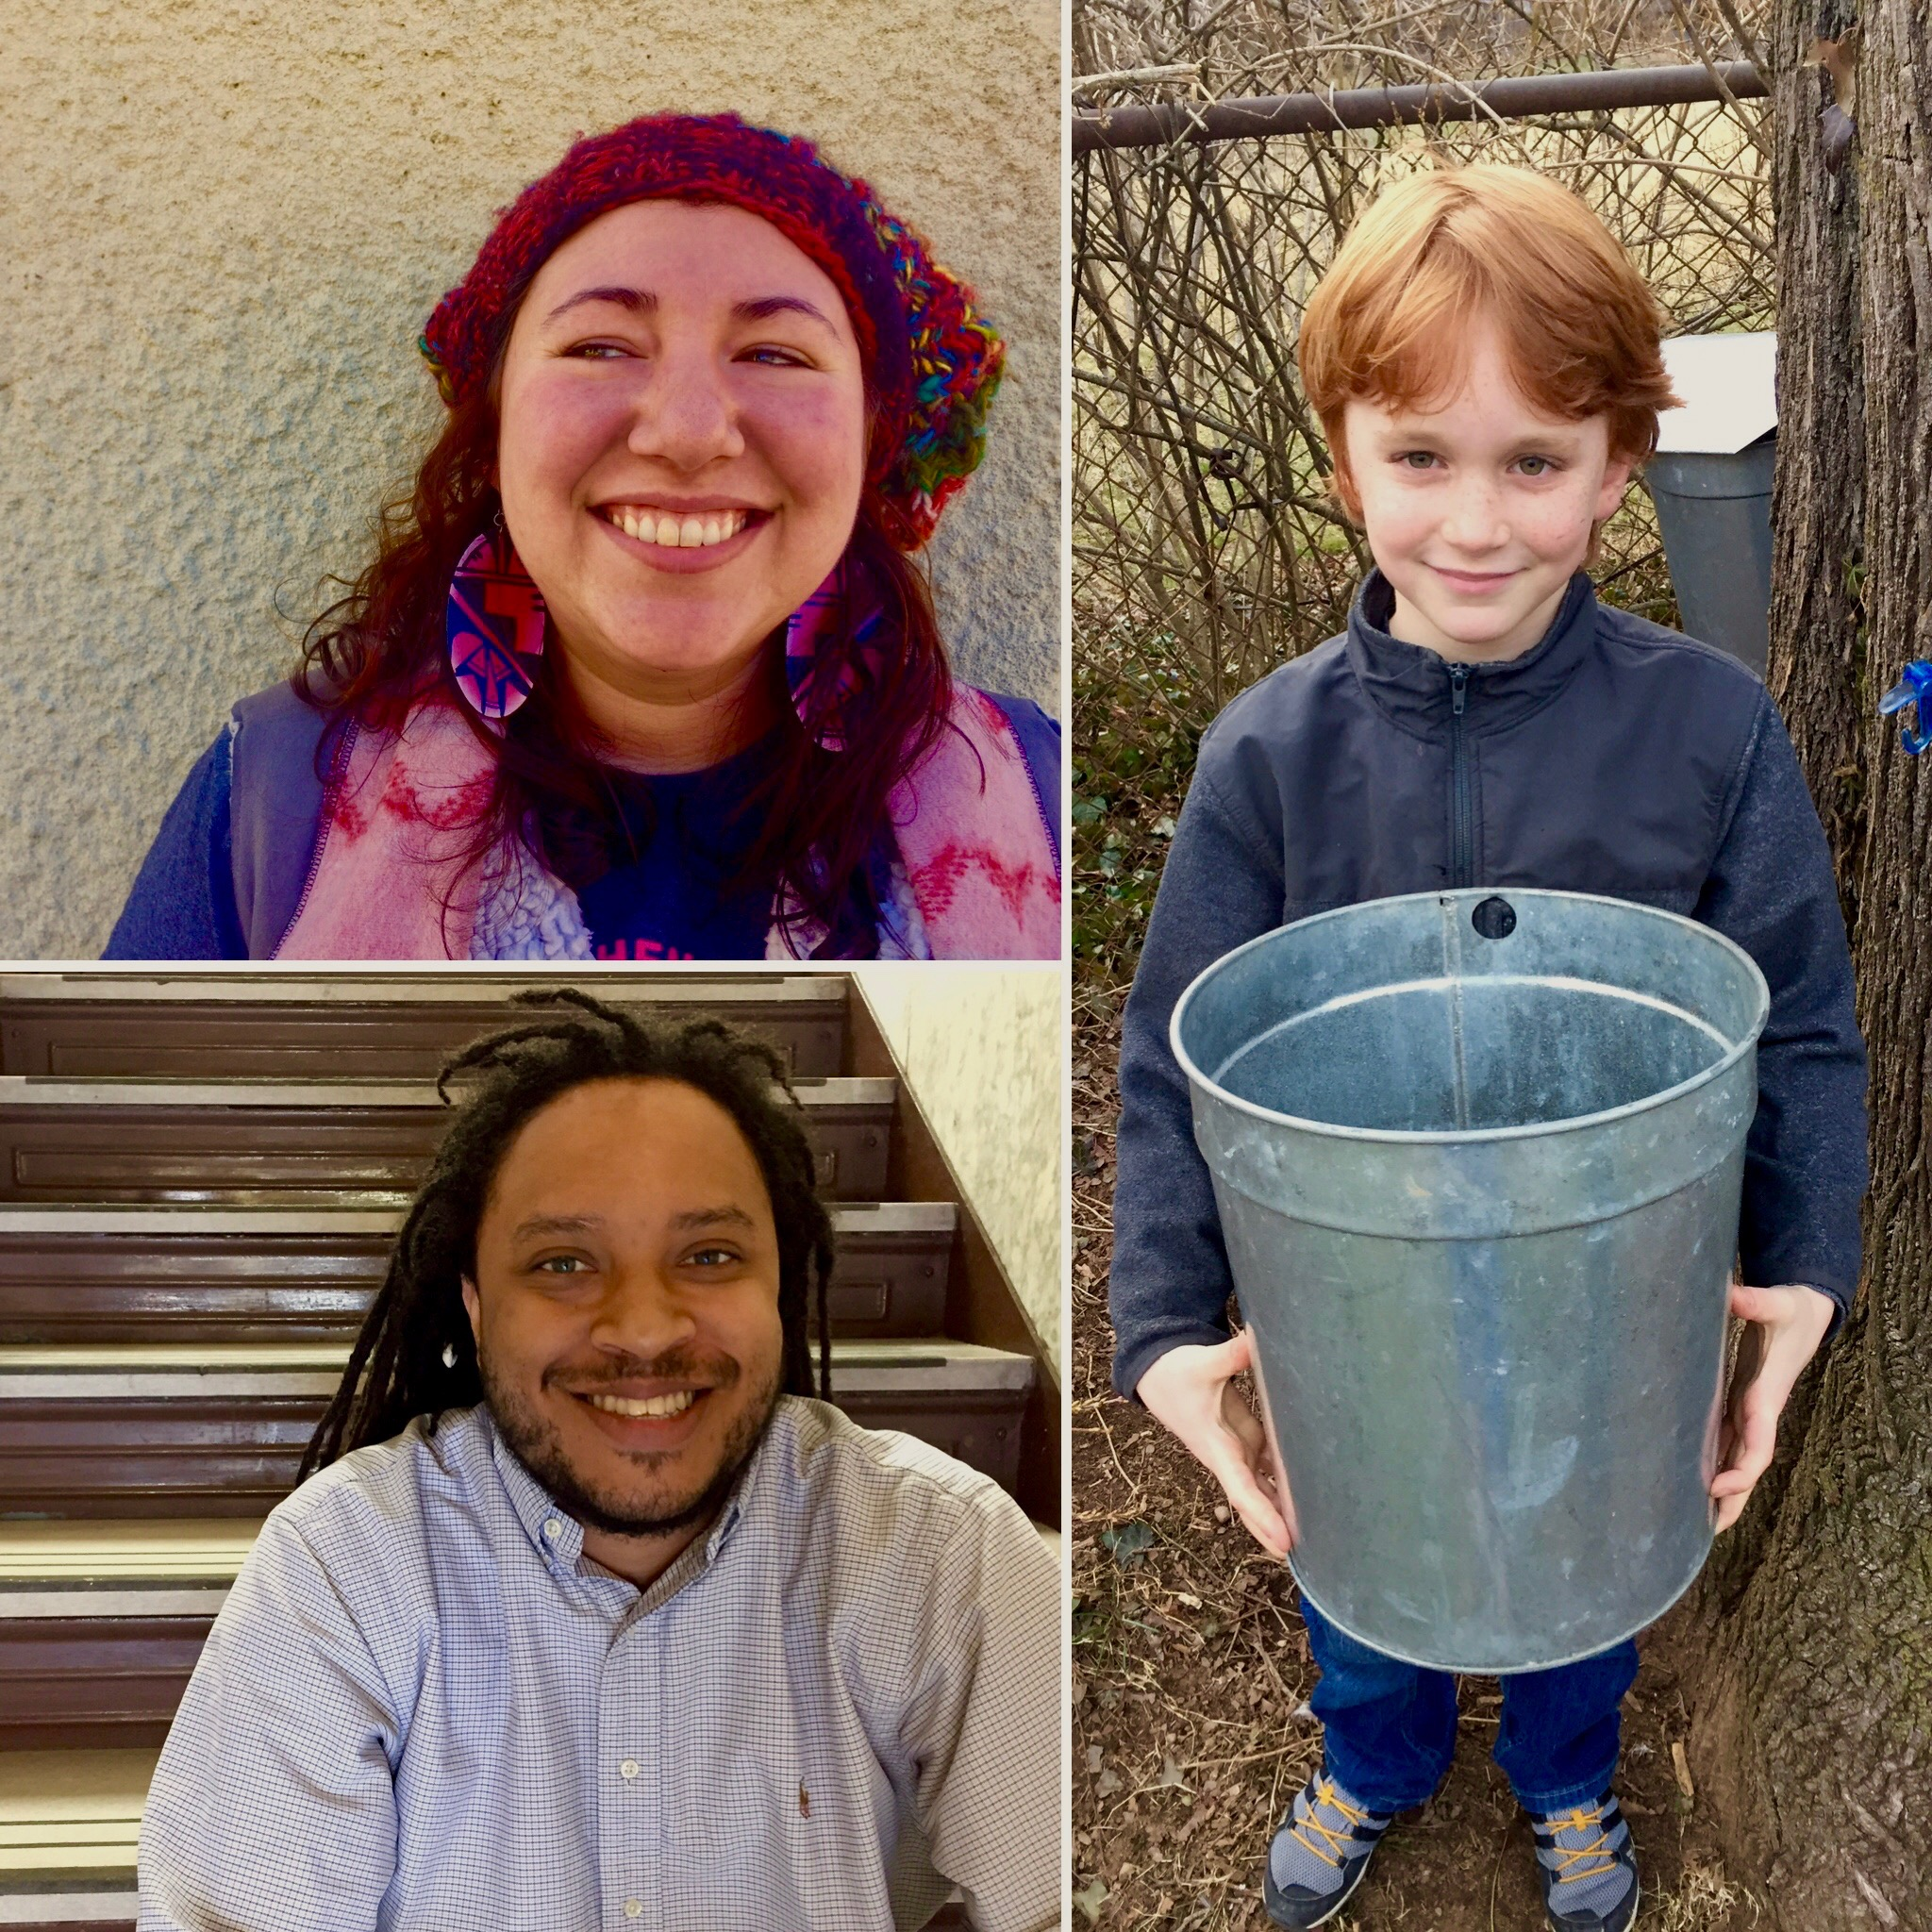 From top right: Rachel Sayet, Mohegan food educator, Sam Ridky collecting sap in his city yard, Marshall Cruz budding food entrepreneur.